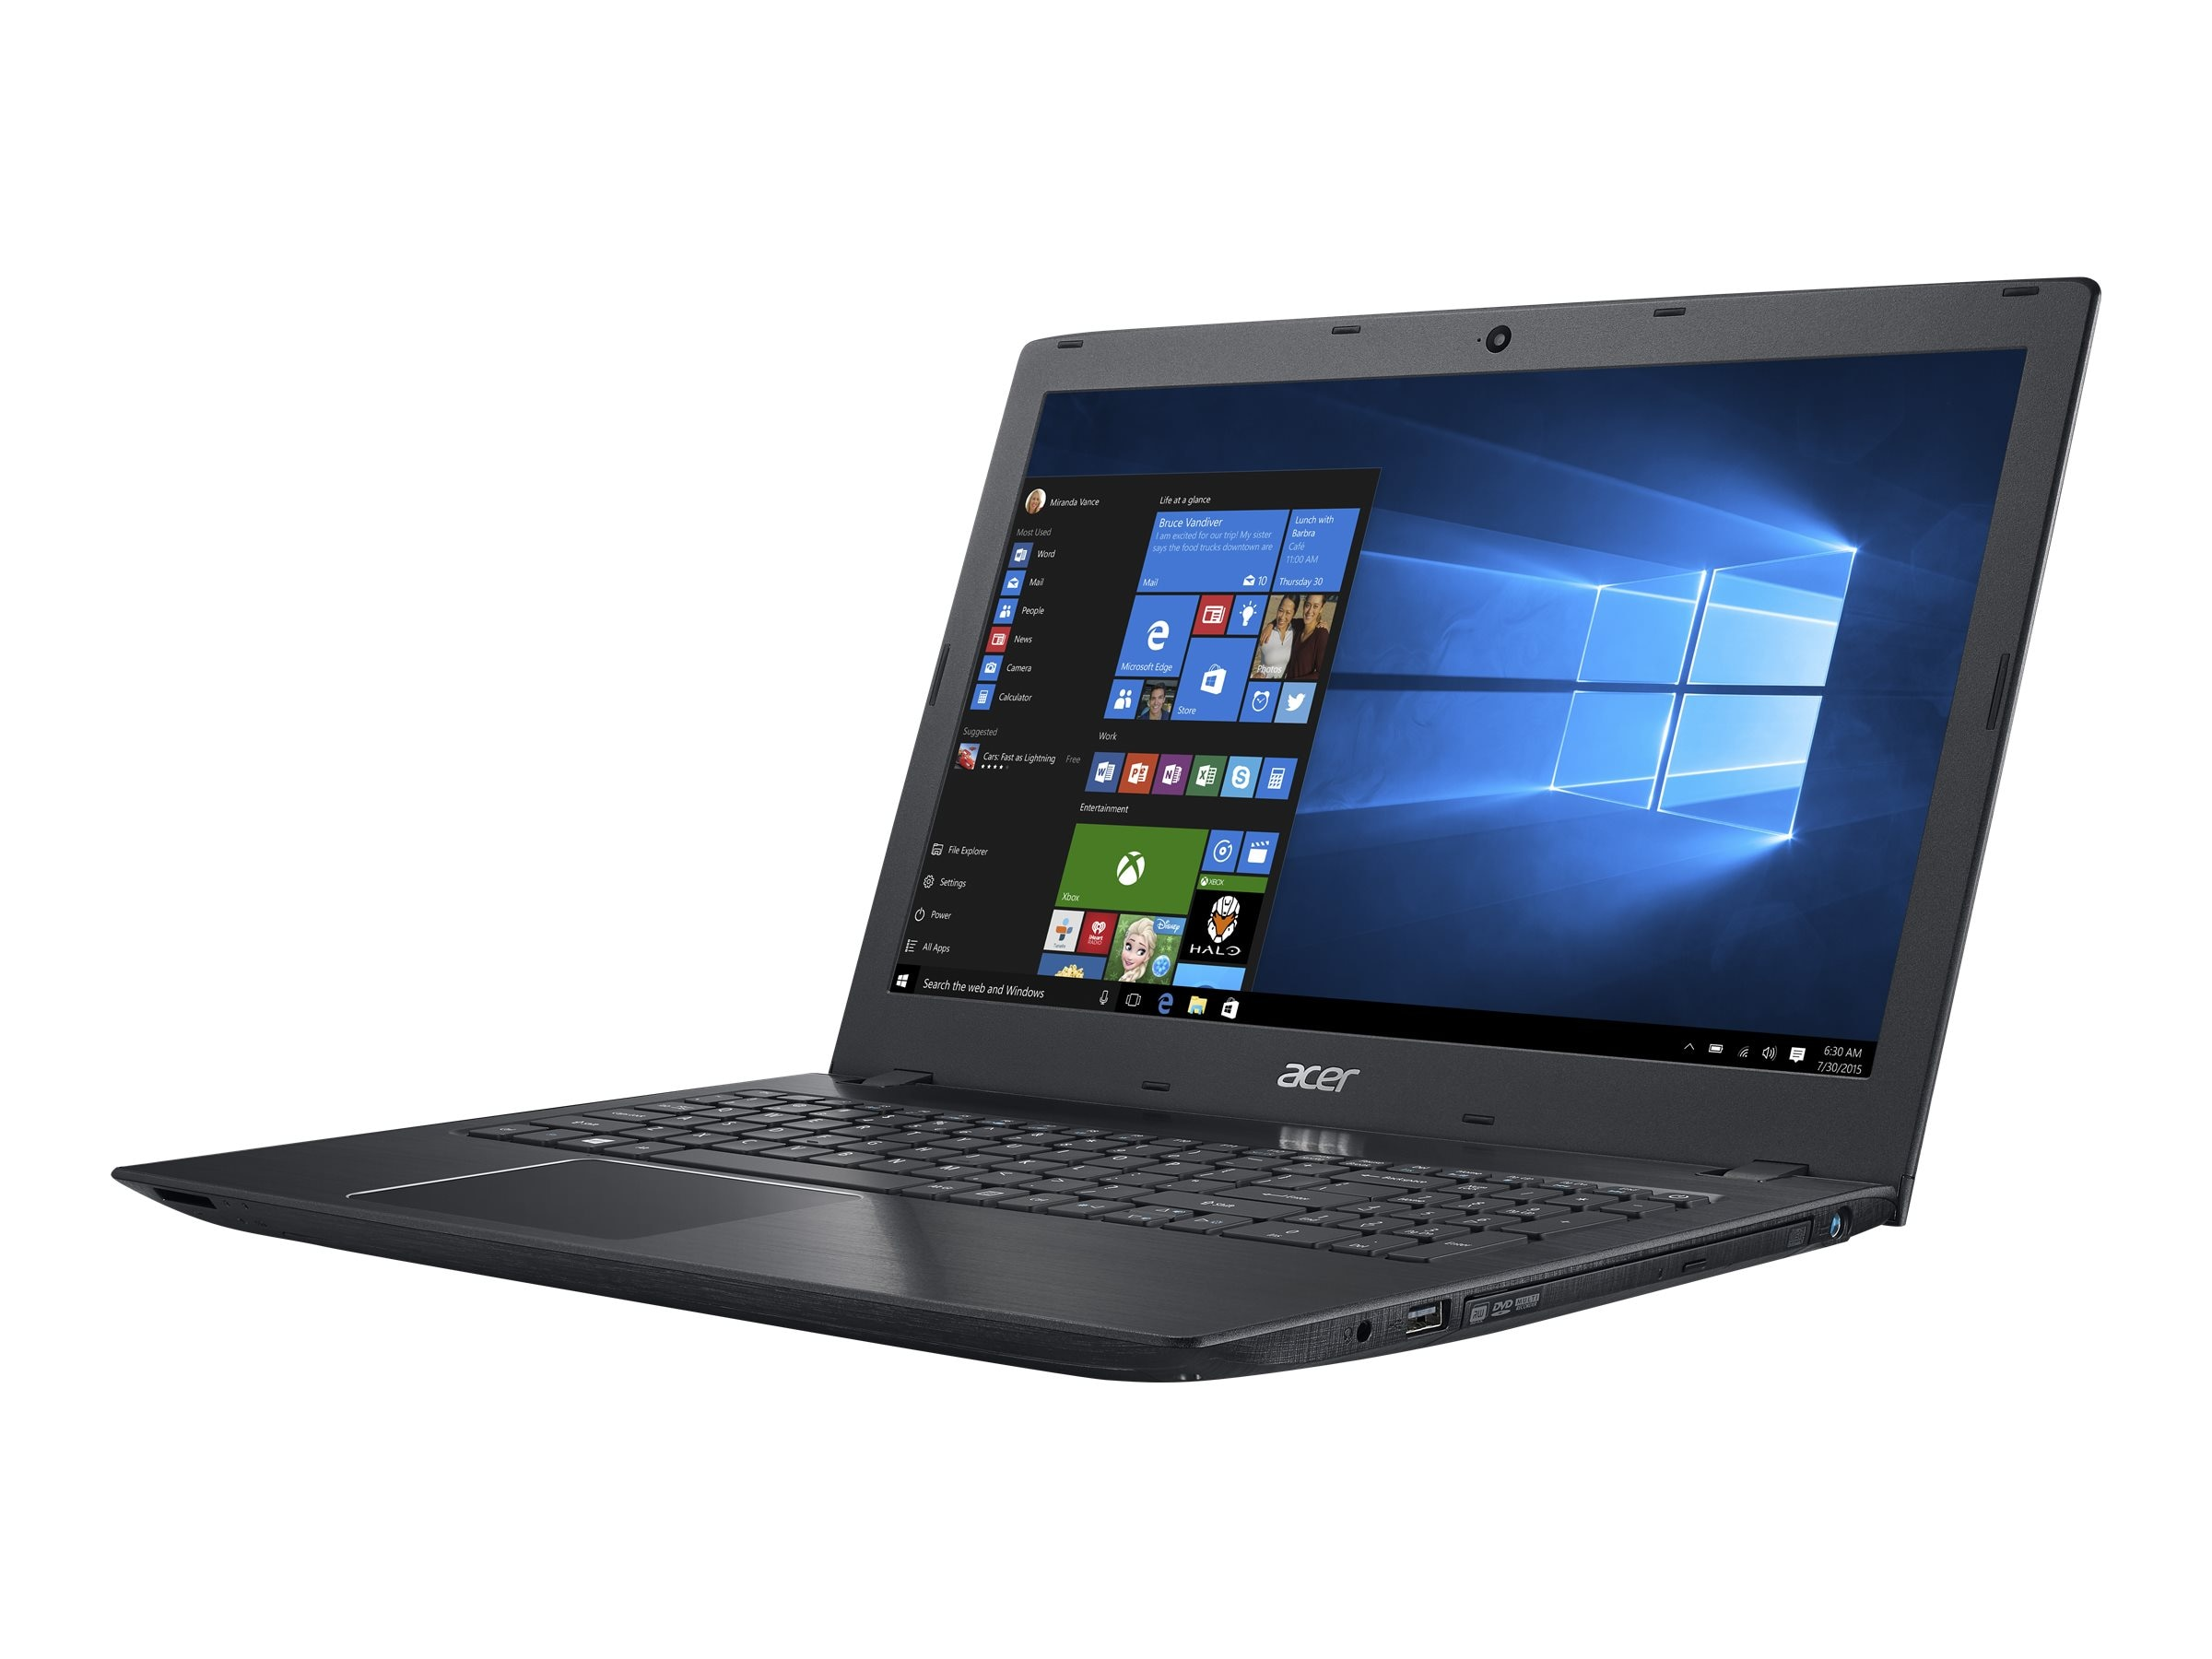 Acer Aspire E5-553-F55F 2.7GHz FX-Series 15.6in display